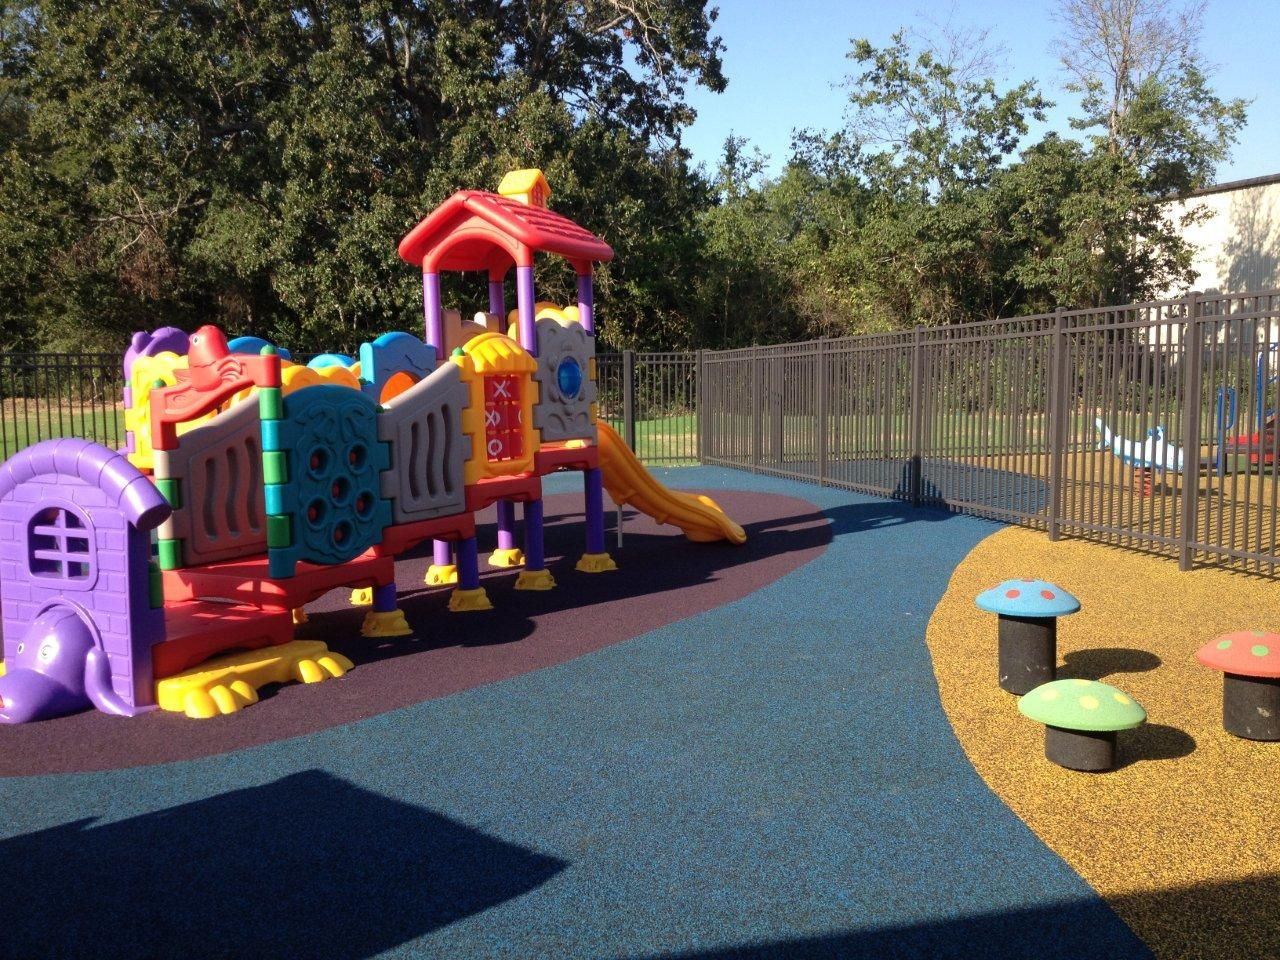 Inexpensive Outdoor Play Area Equipment for Daycare and ...